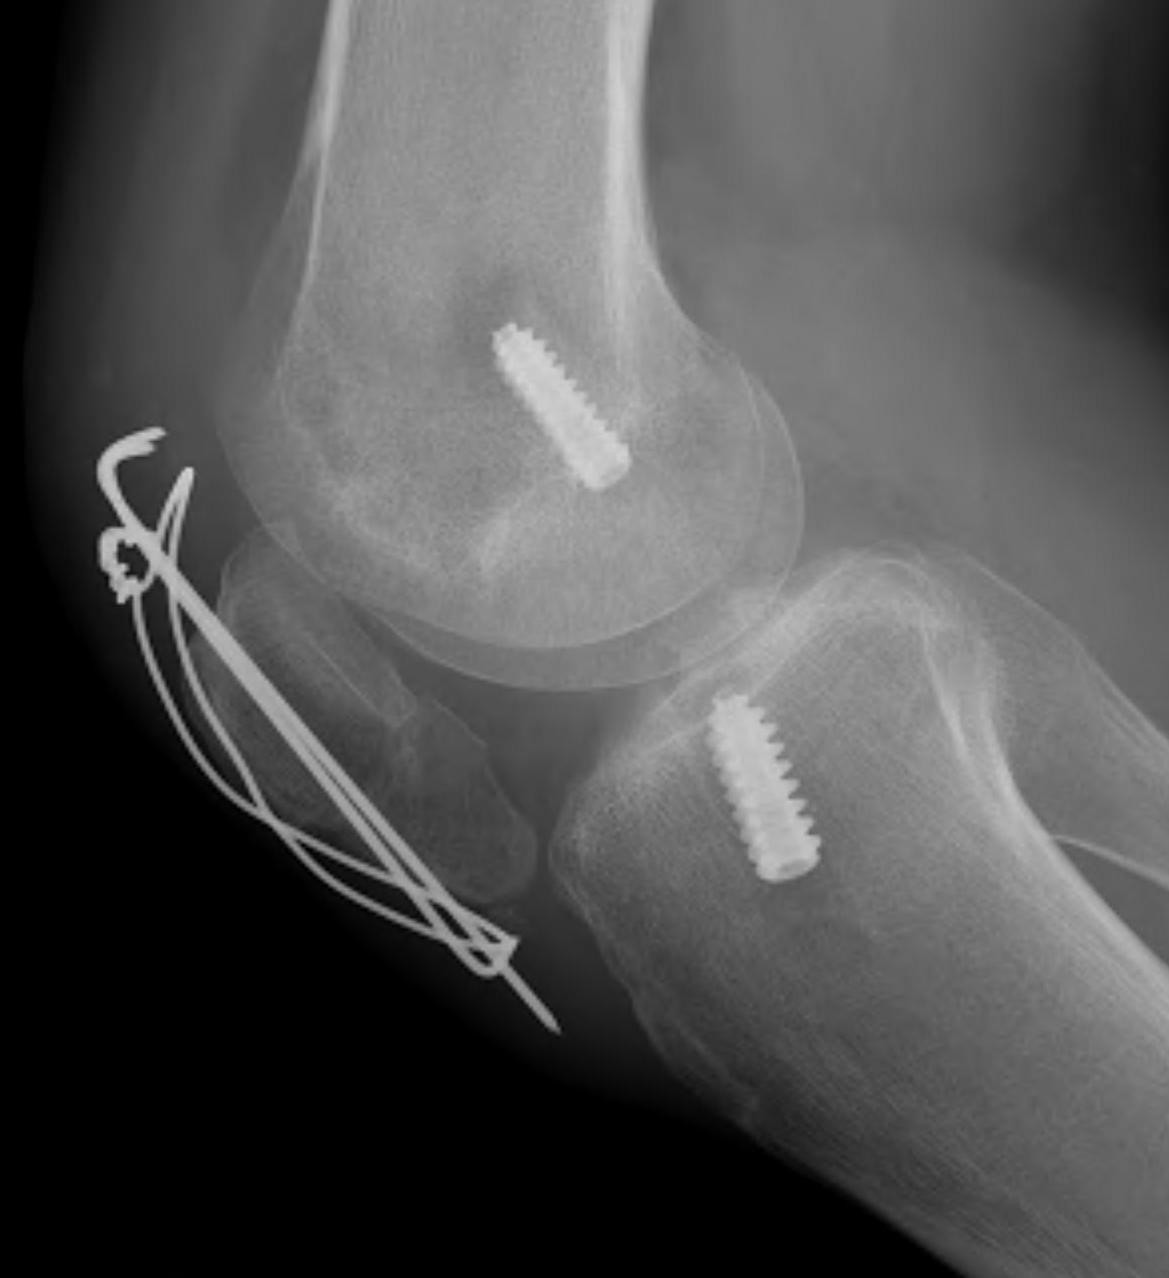 ACL BPTB Patella ORiF Lateral